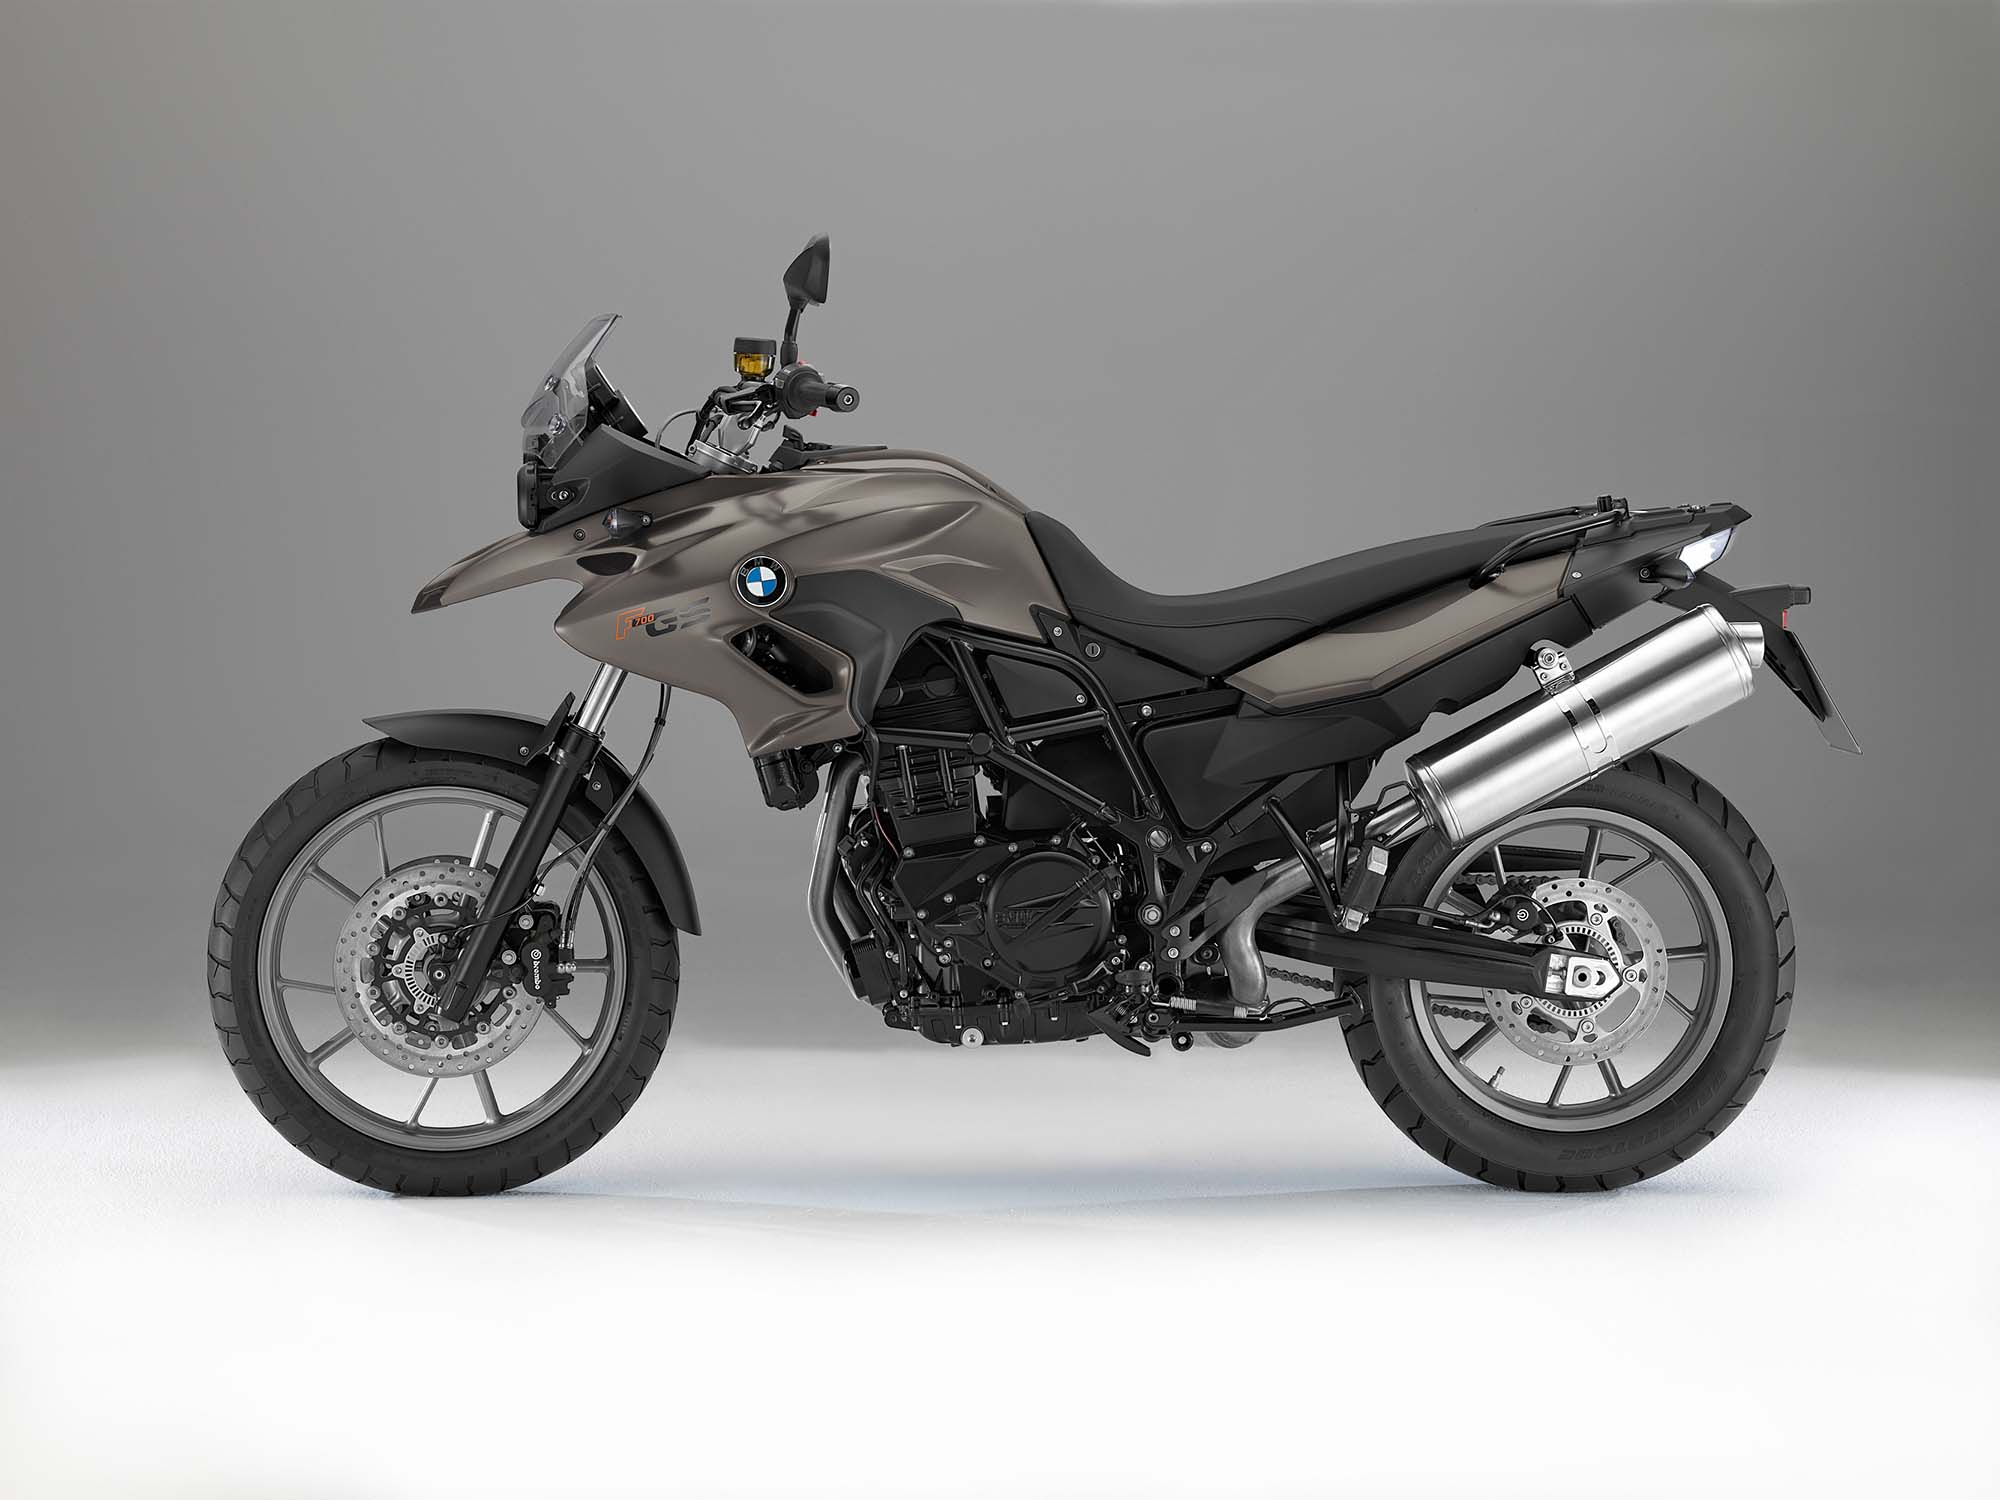 Bmw F800gs Low Seat Height